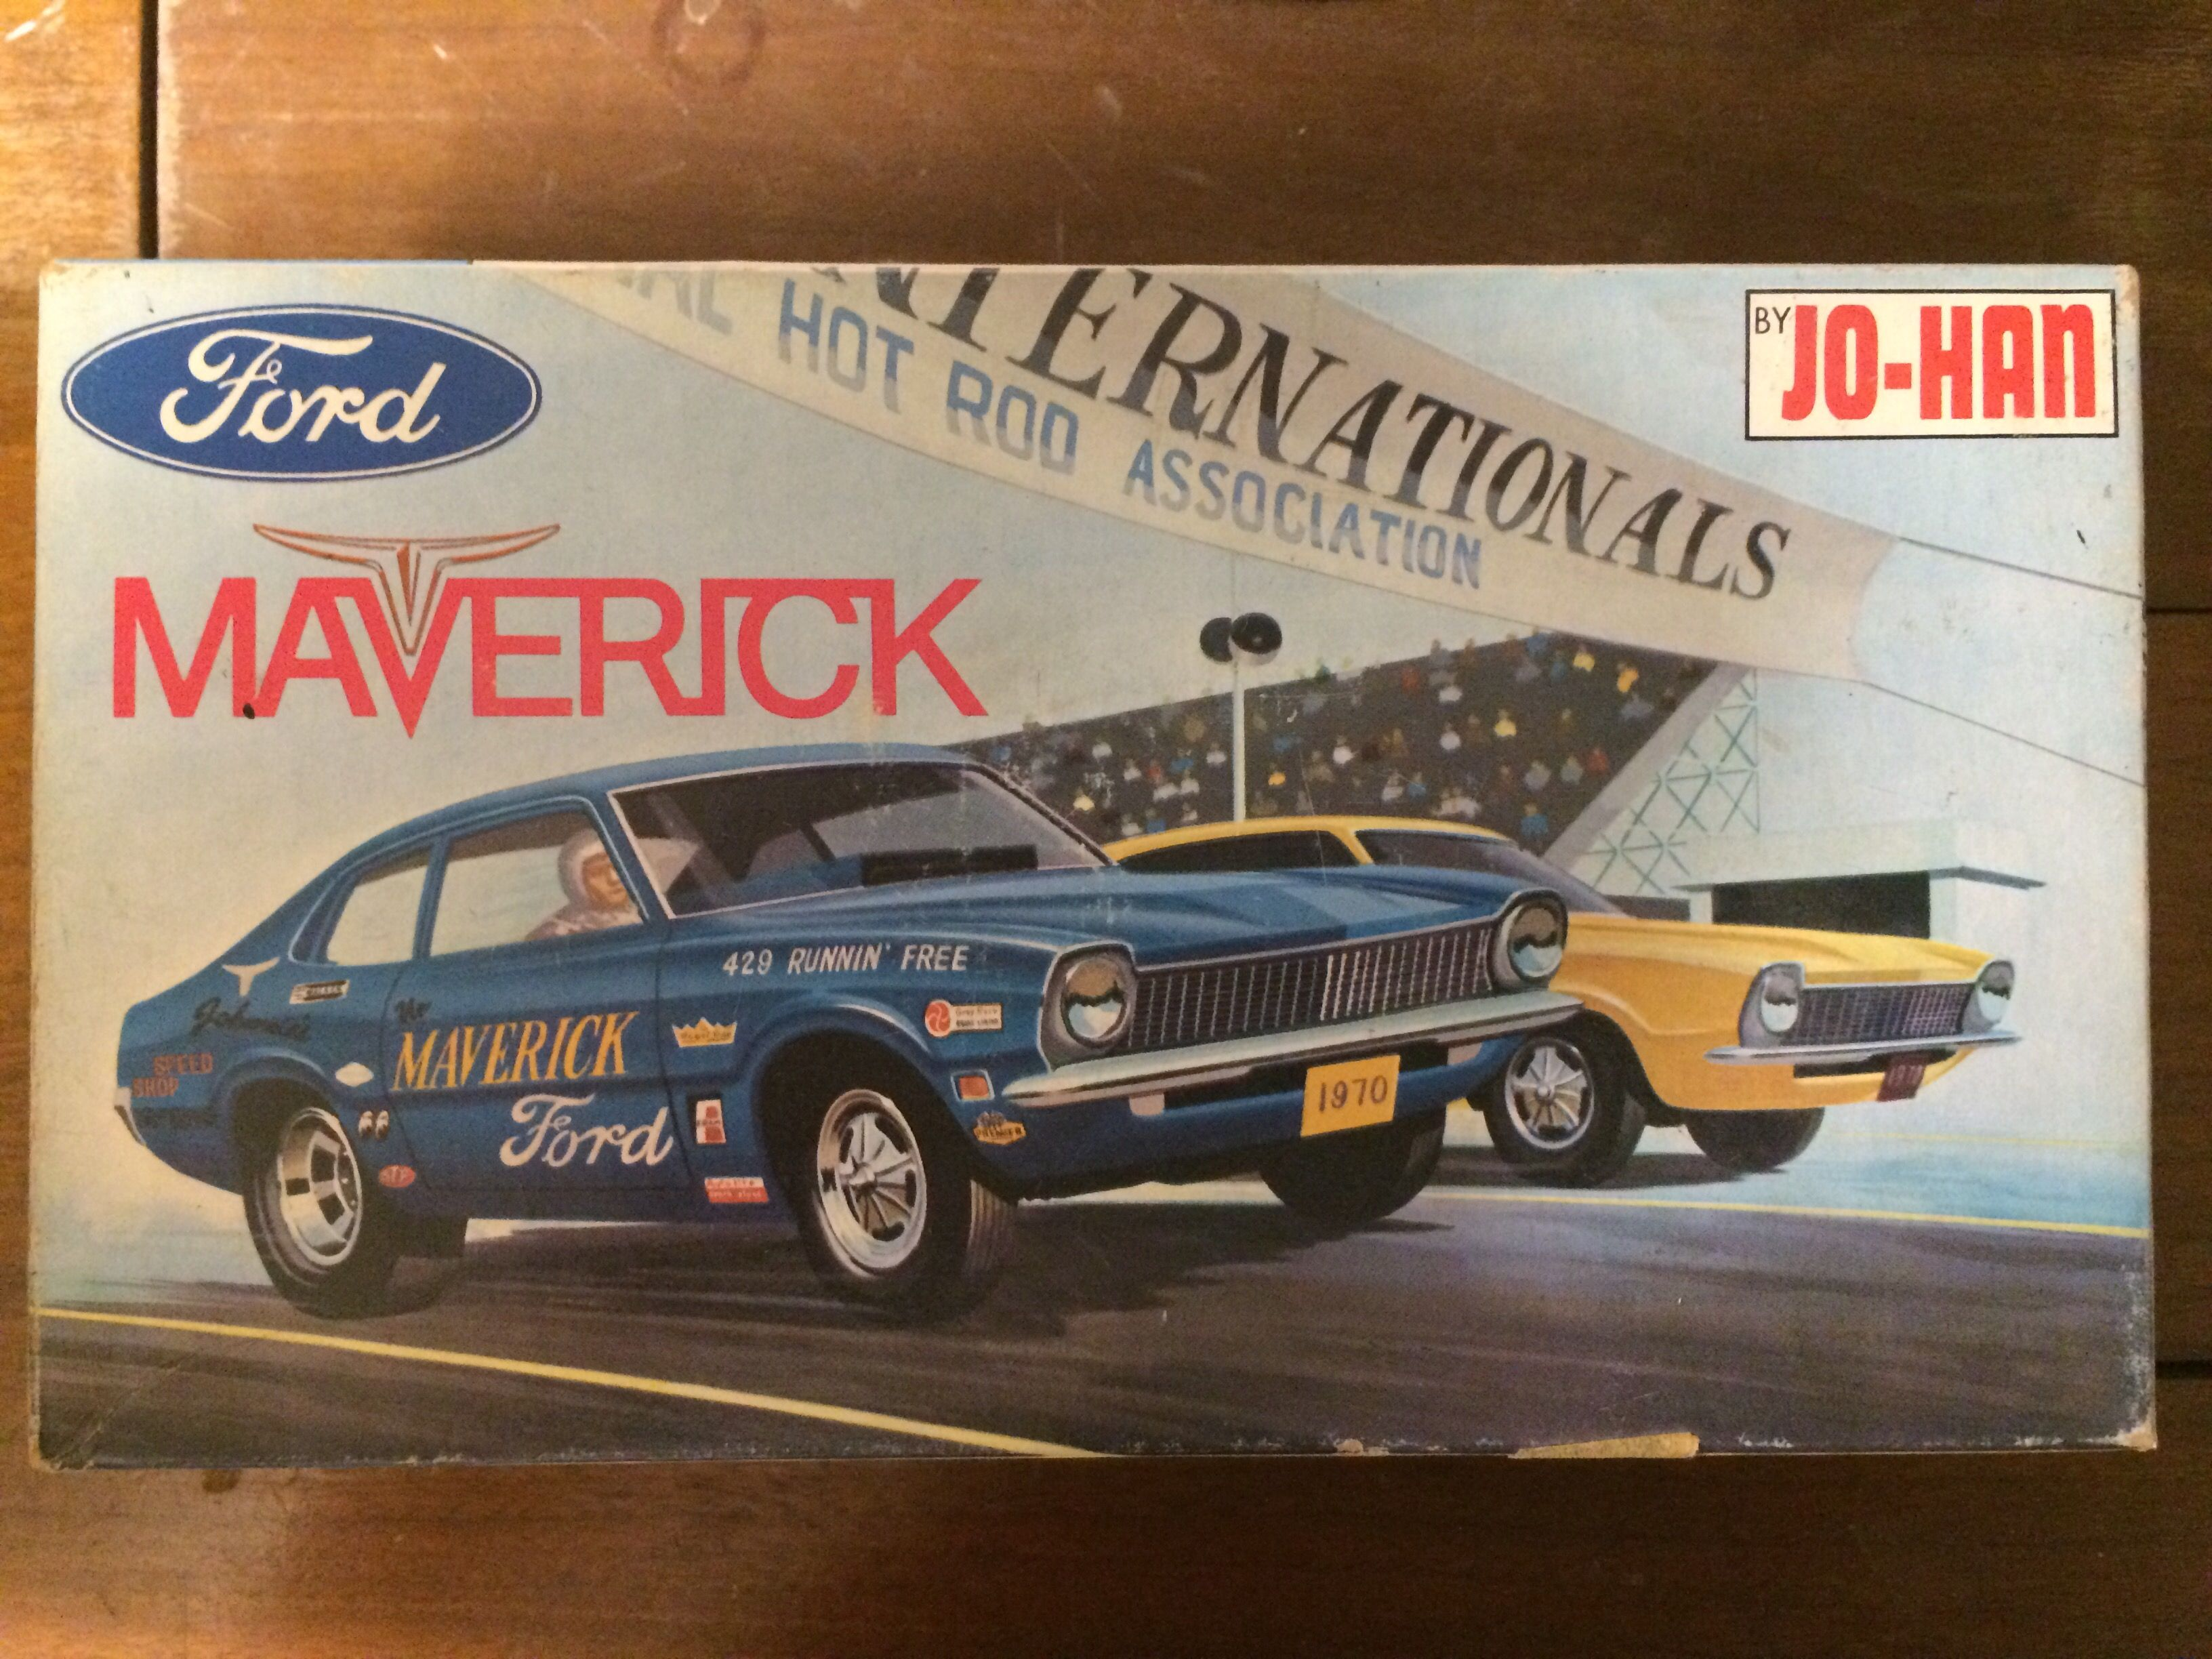 Johan Maverick Model Kit Plastic Model Kits Cars Model Kit